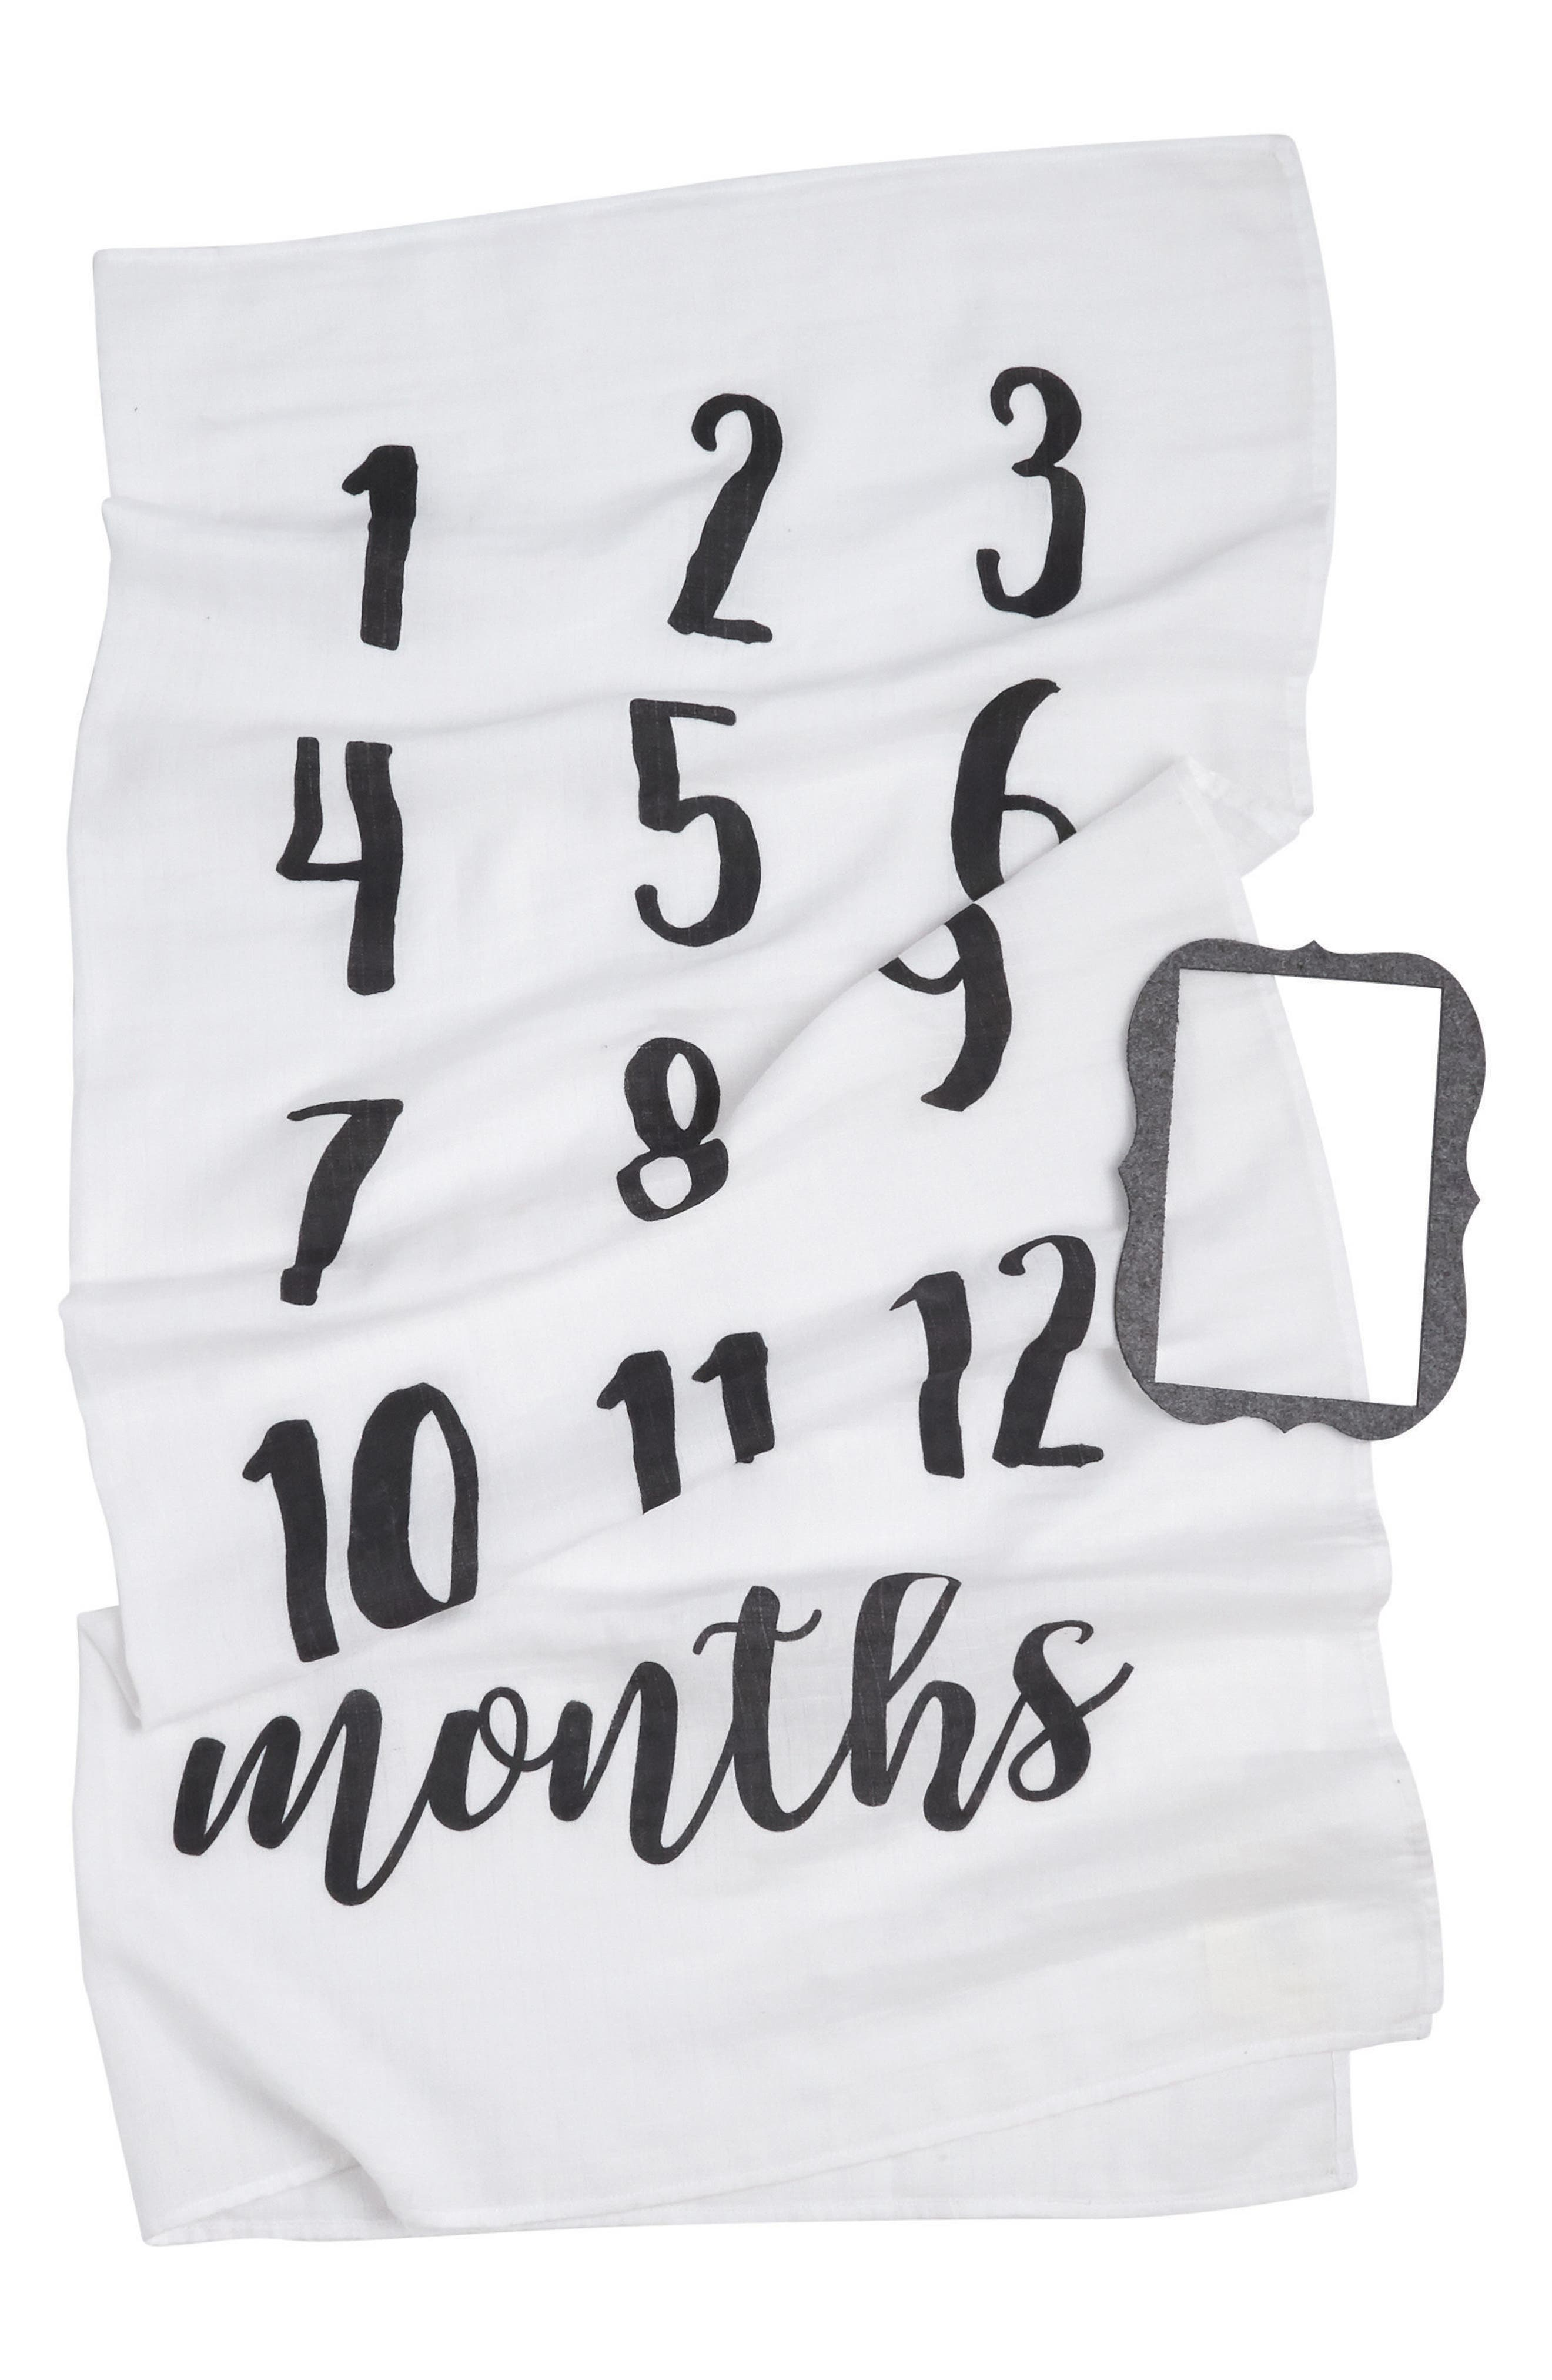 Alternate Image 1 Selected - Mud Pie Monthly Milestone Blanket & Frame Set (Baby)